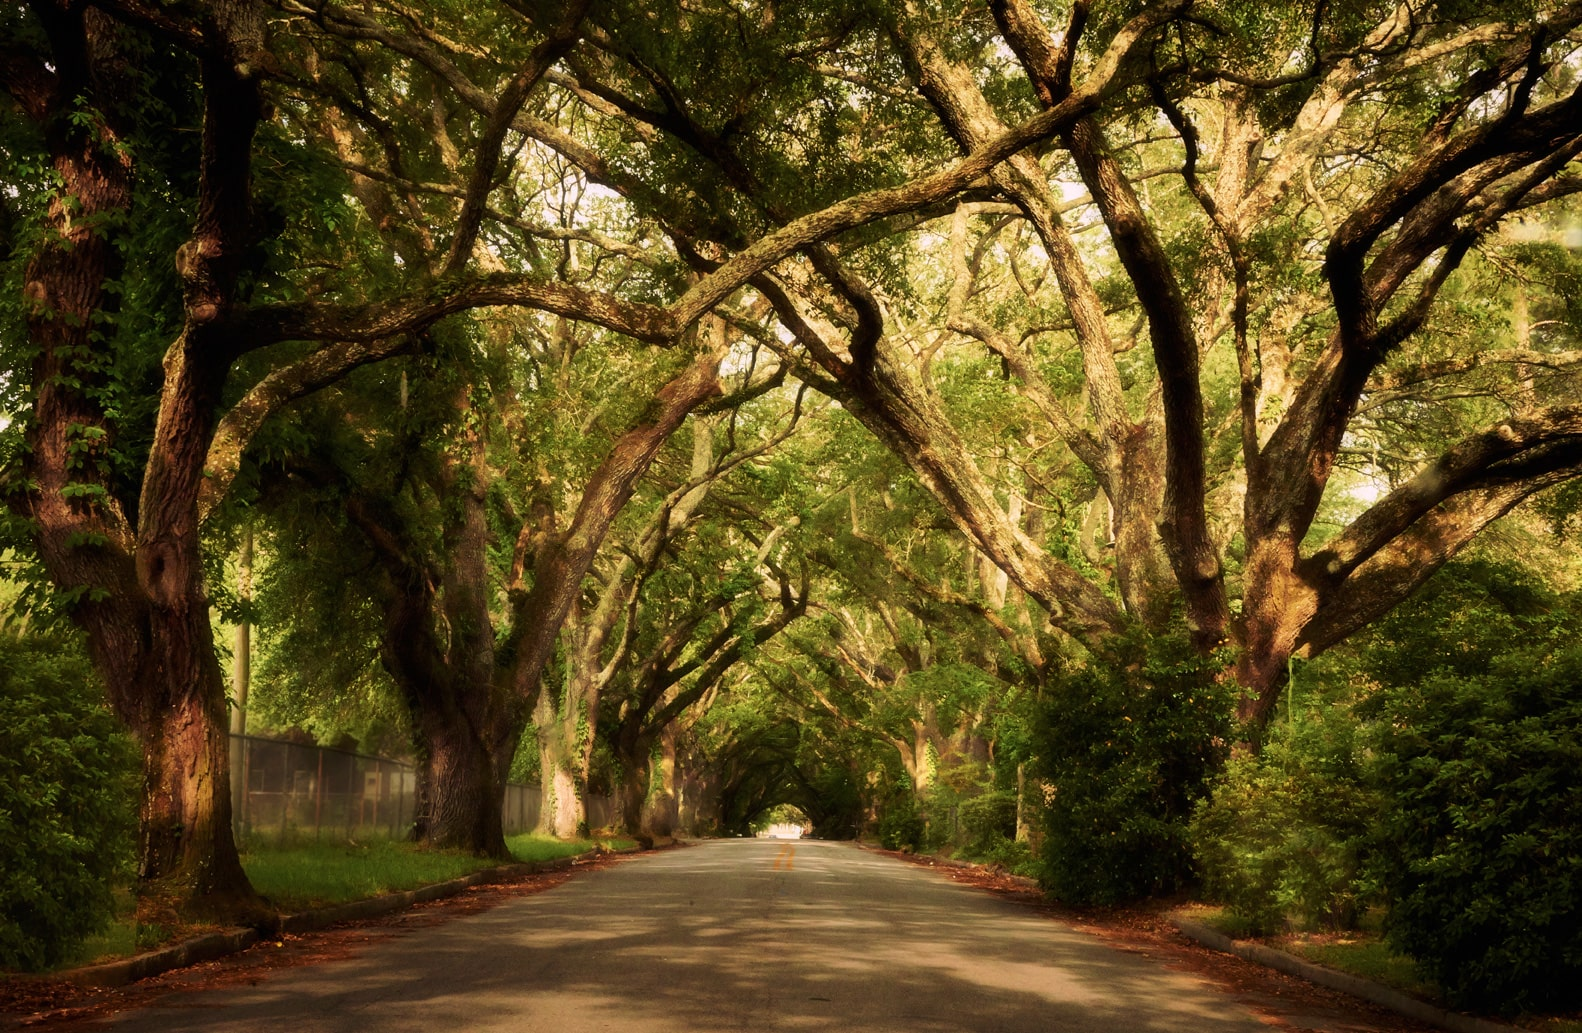 Live oak trees overhang W. Society Ave. in Albany, Ga. Photo by Philip Wages.